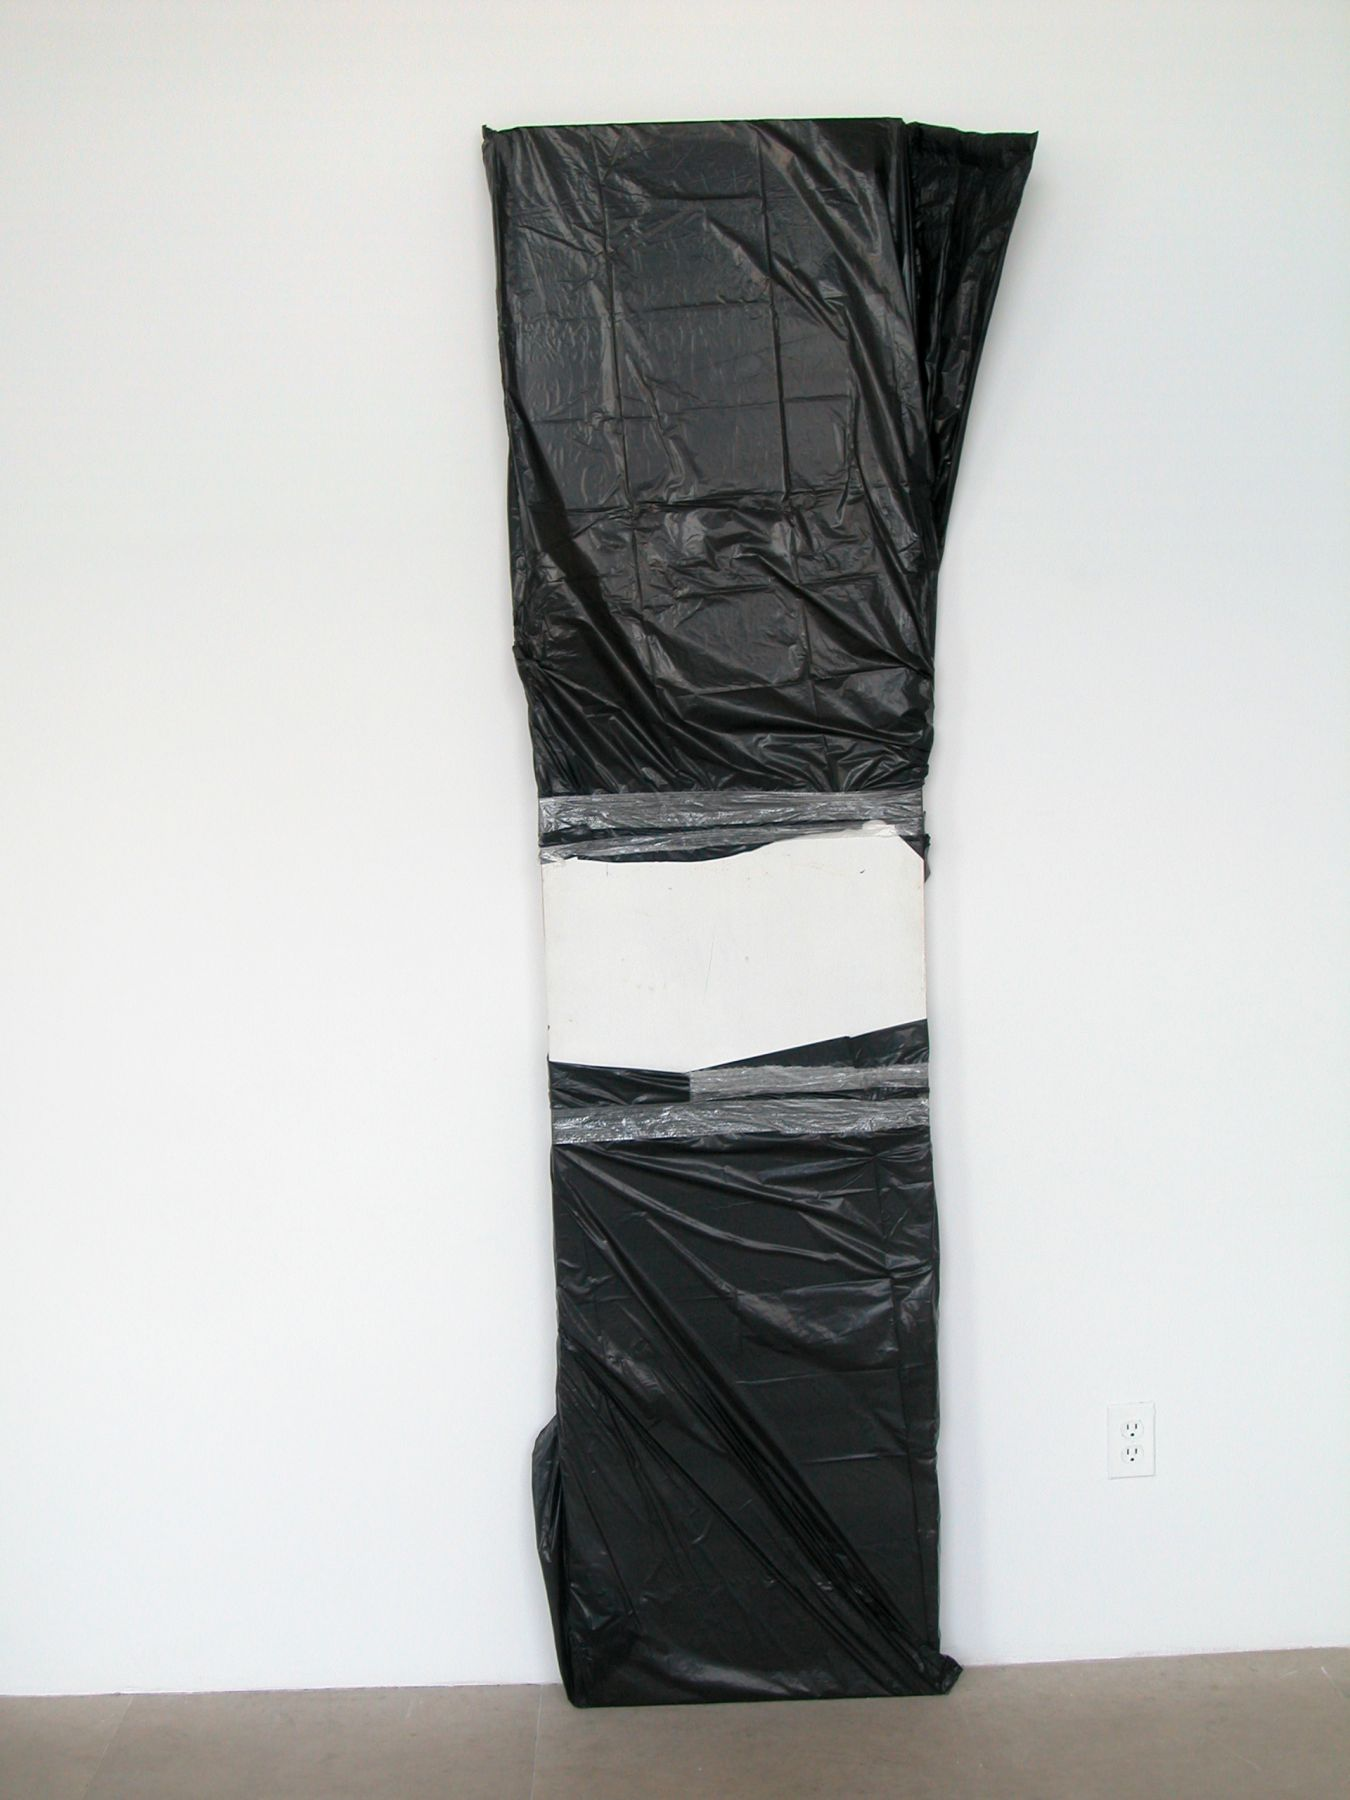 The Last One, 2008, Hollow core door, garbage bags, tape, 88 x 29 x 3 inches